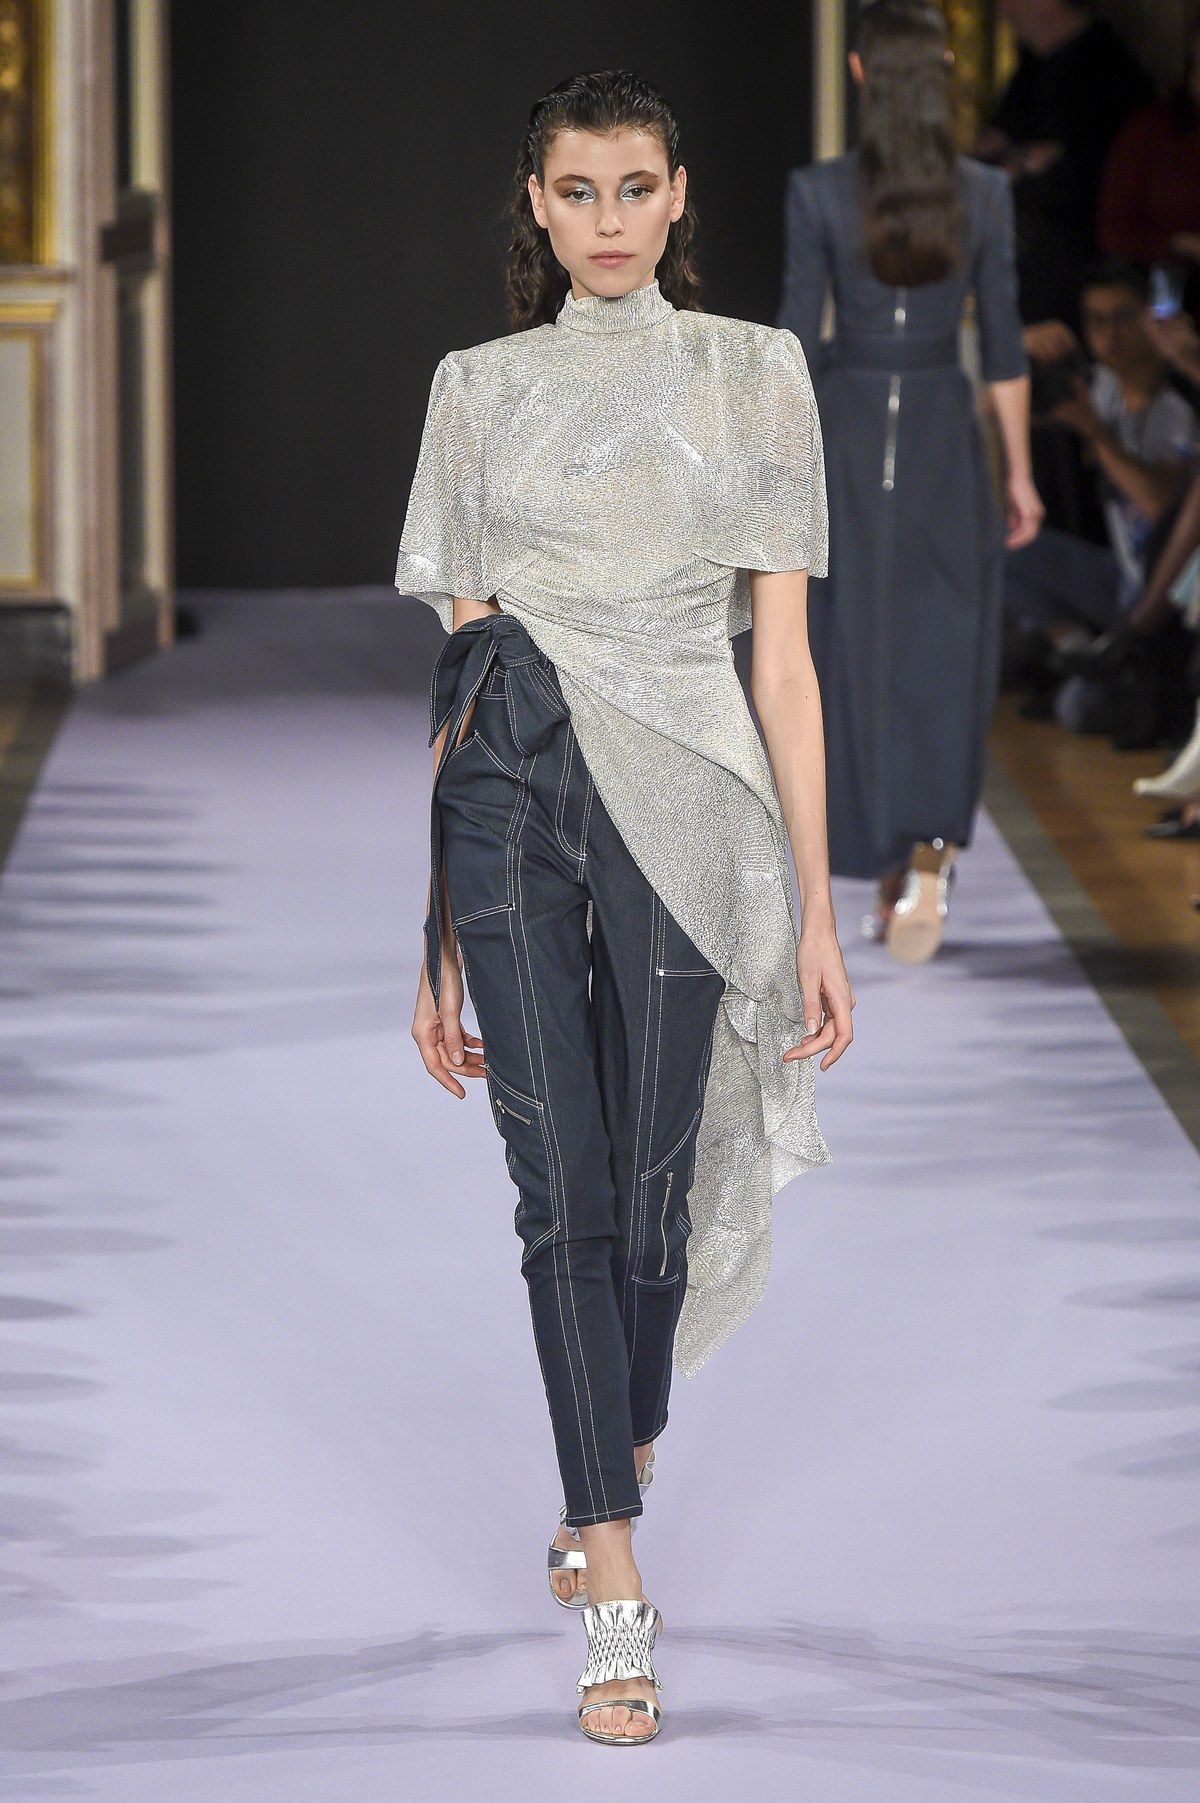 d29be0f385e Talbot Runhof Spring 2019 Ready-to-Wear Fashion Show in 2019 ...